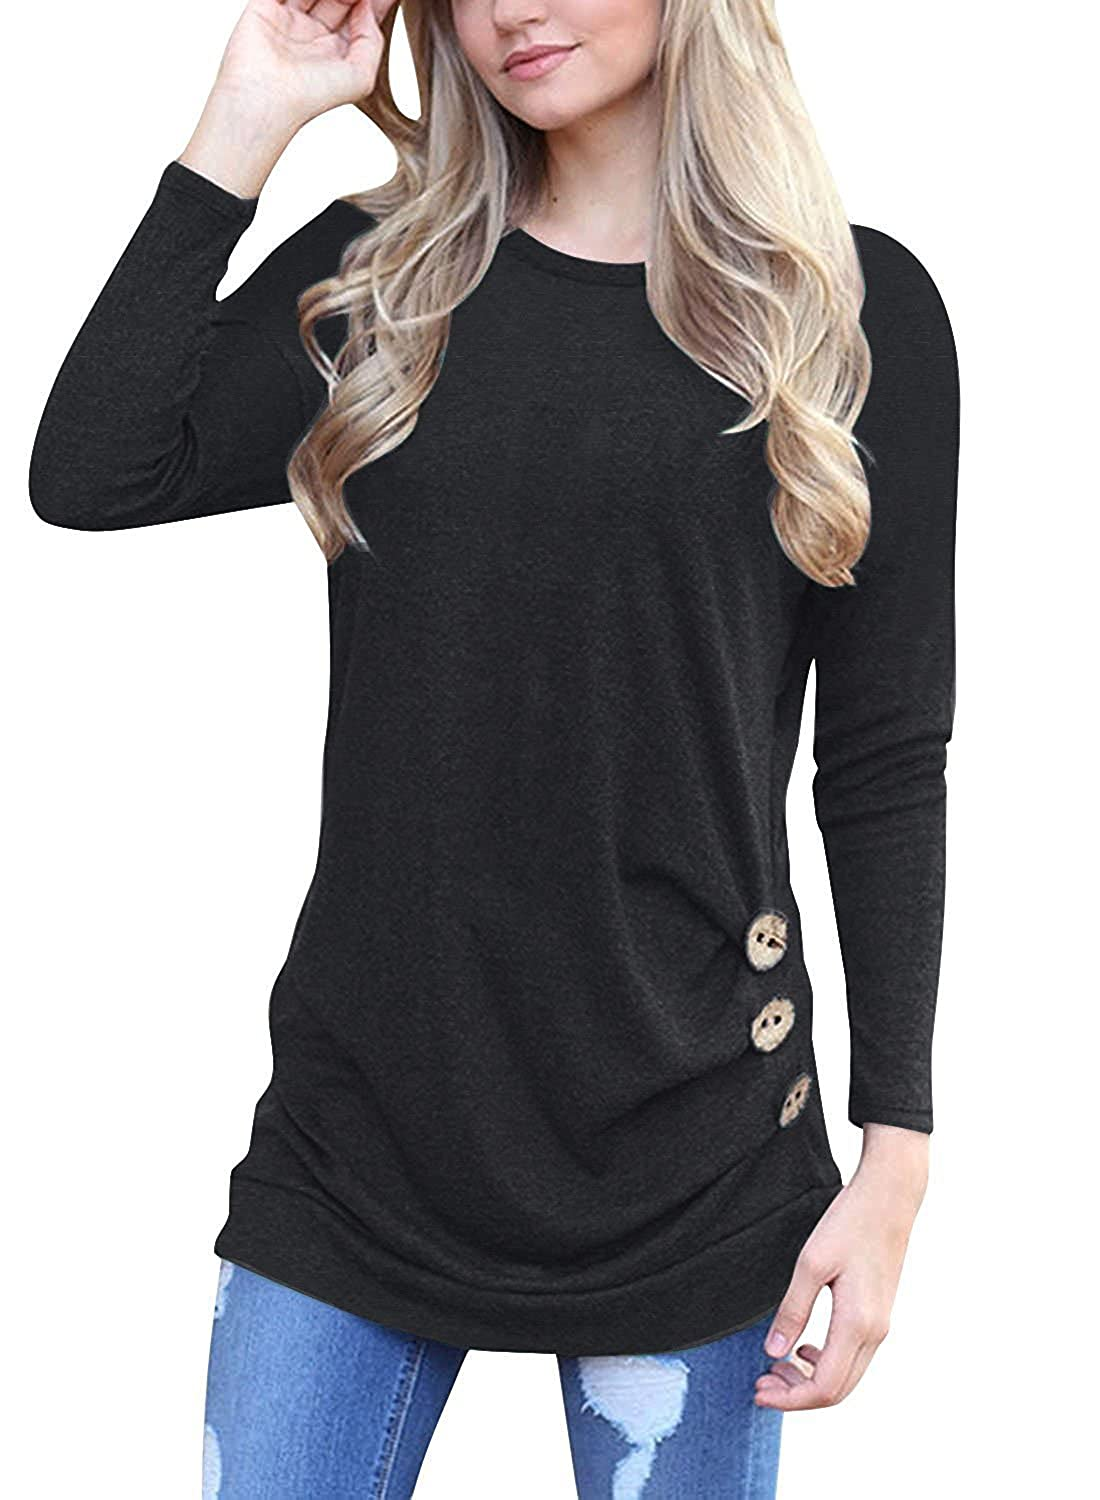 875fd42d MOLERANI Women's Casual Long Sleeve Round Neck Loose Tunic T Shirt Blouse  Tops at Amazon Women's Clothing store: